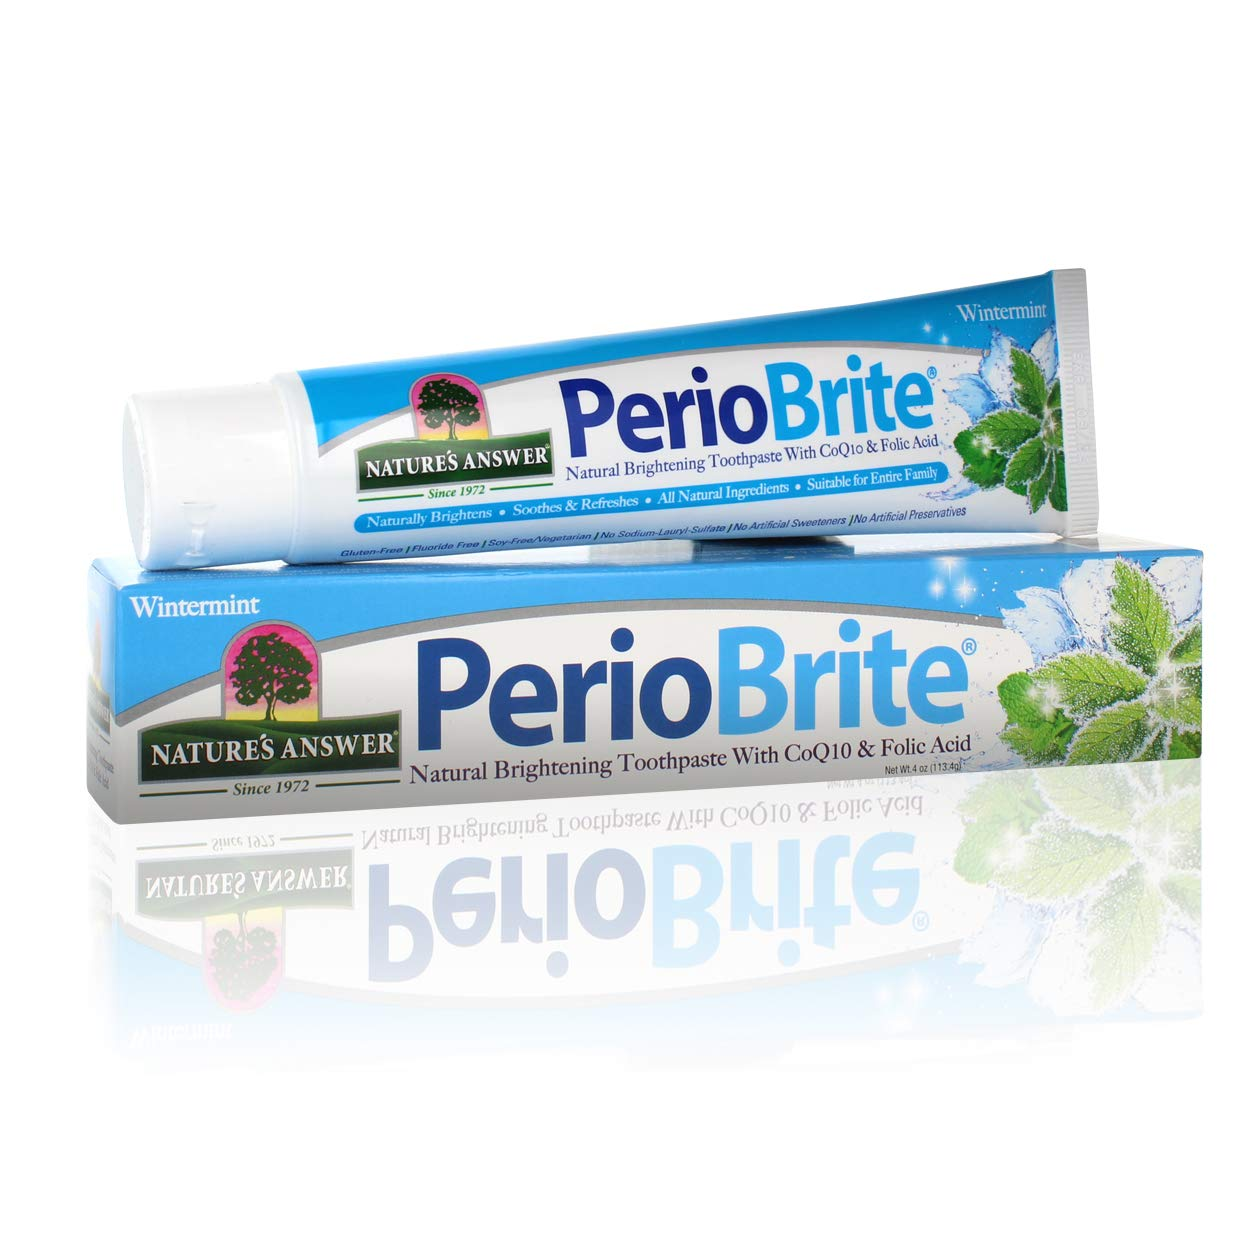 Nature's Answer Periobrite Natural Spring new work one after another Toothpaste Whitening Soothe It is very popular